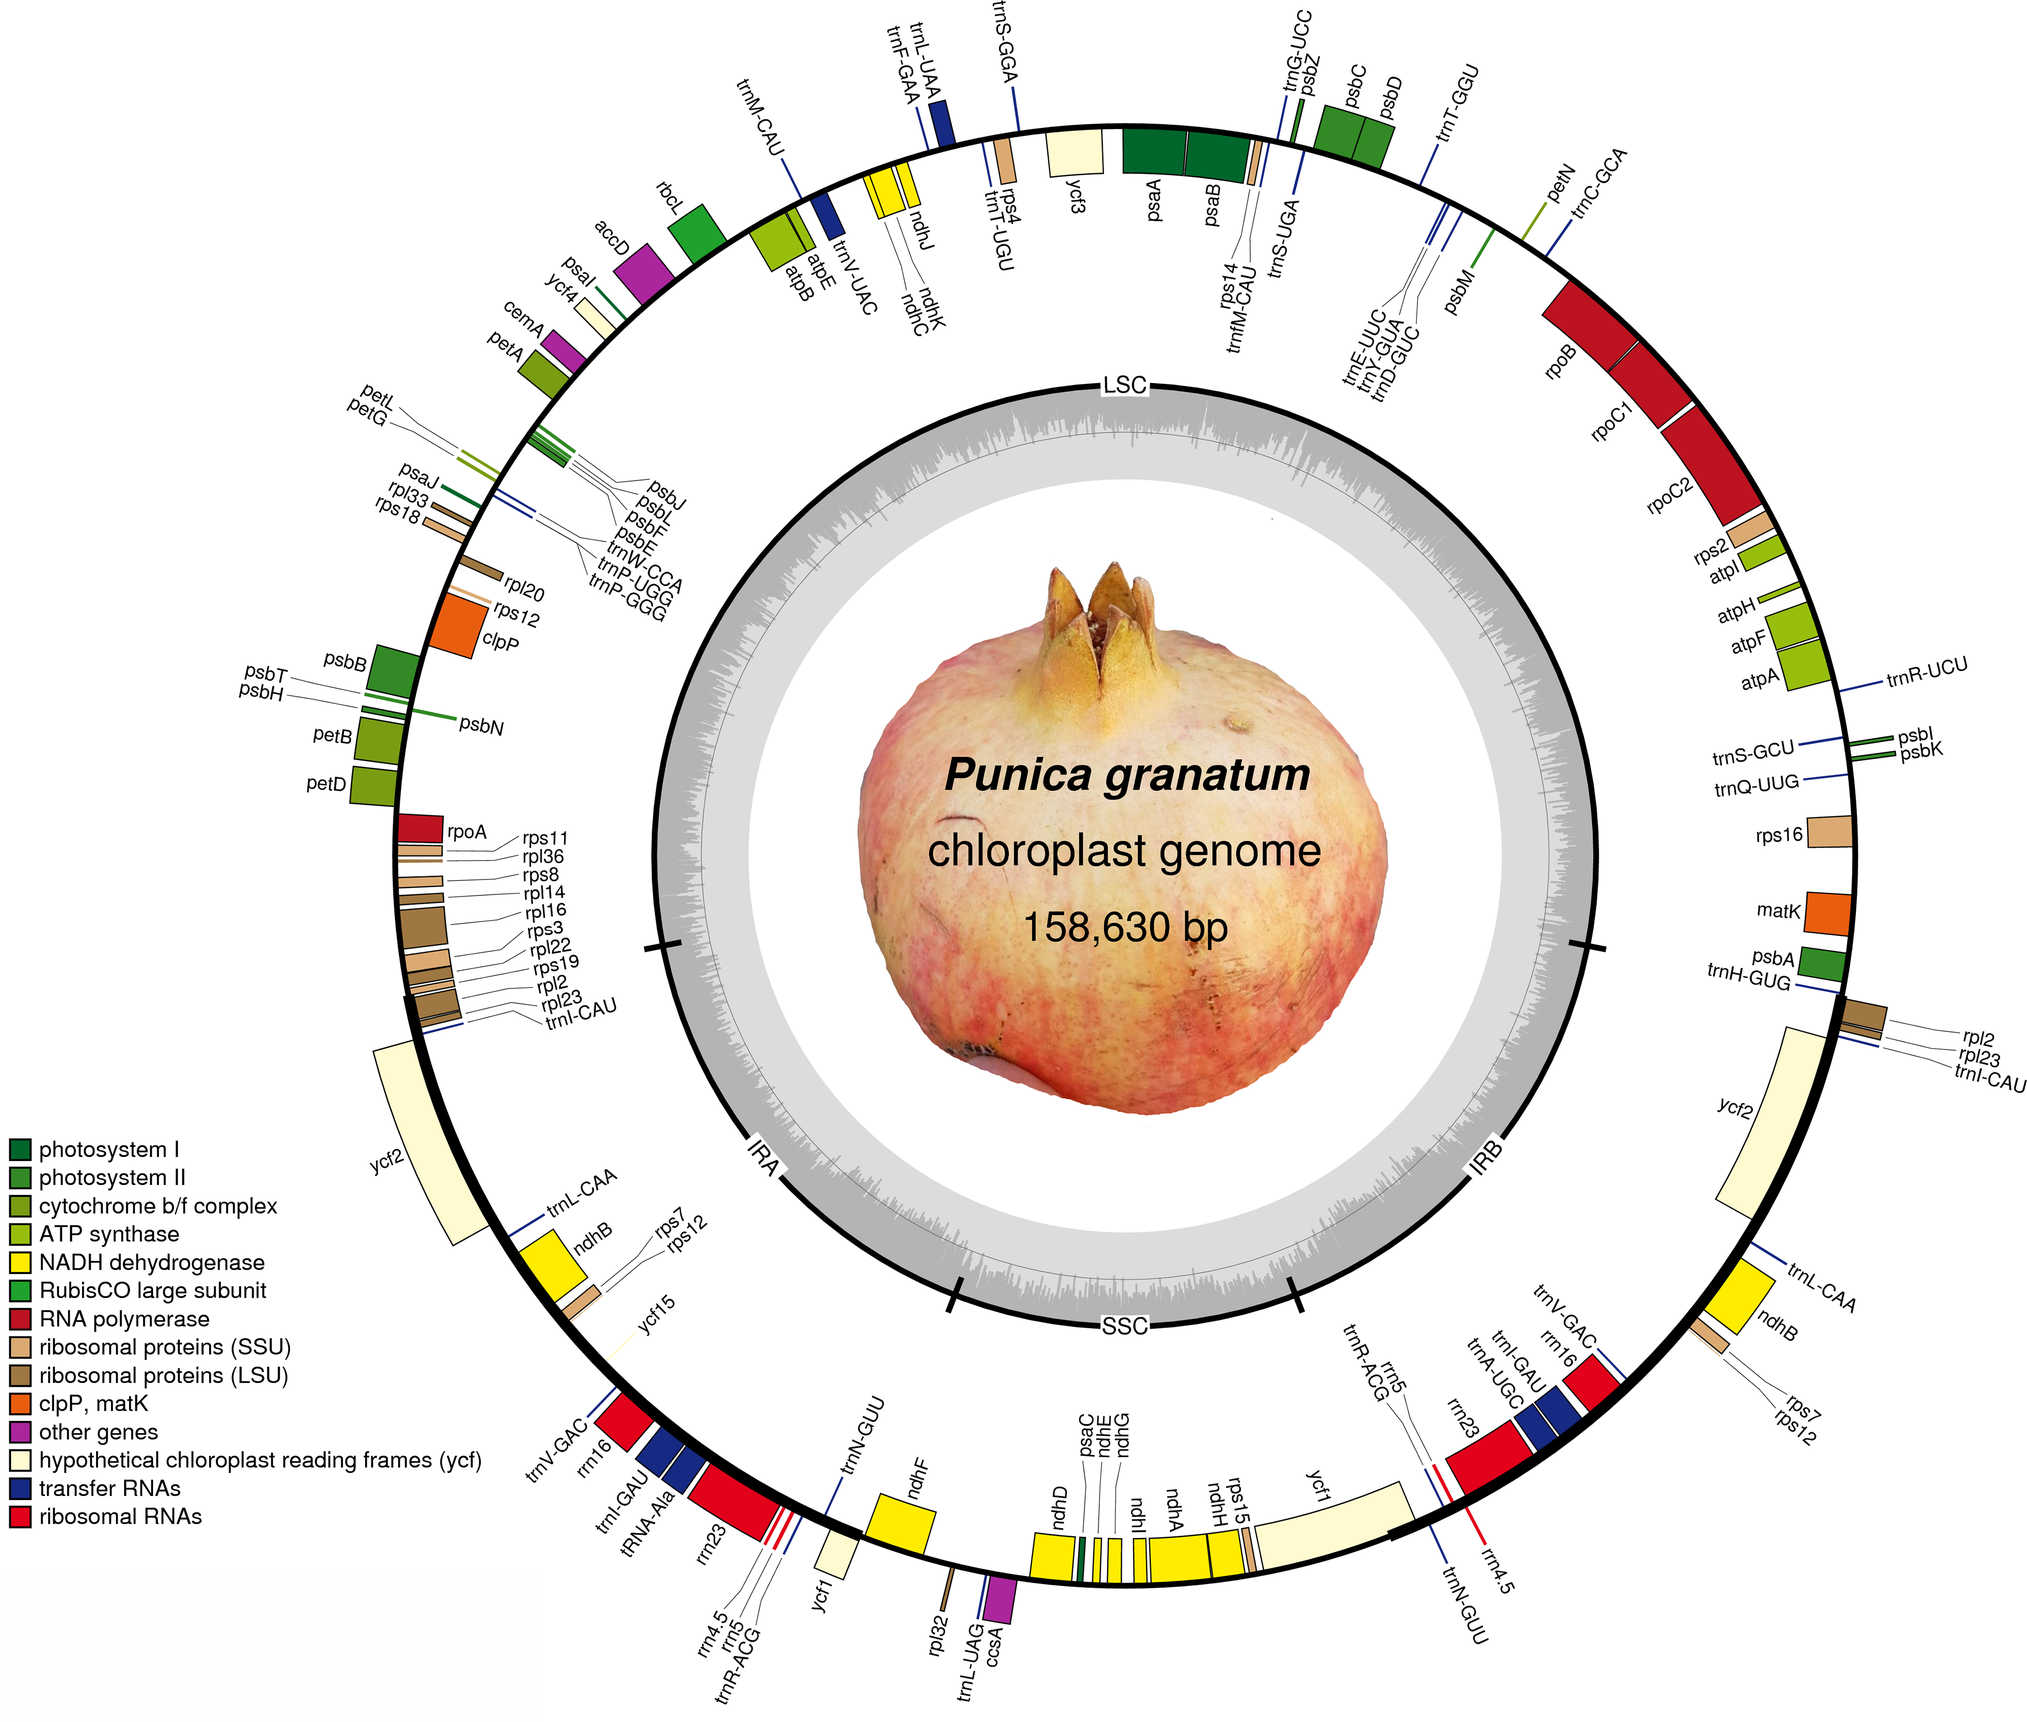 First Reported Chloroplast Genome Sequence Of Punica Granatum Figure 8 The Block Diagram Algorithm Psa 4000 Monitor Fig 1